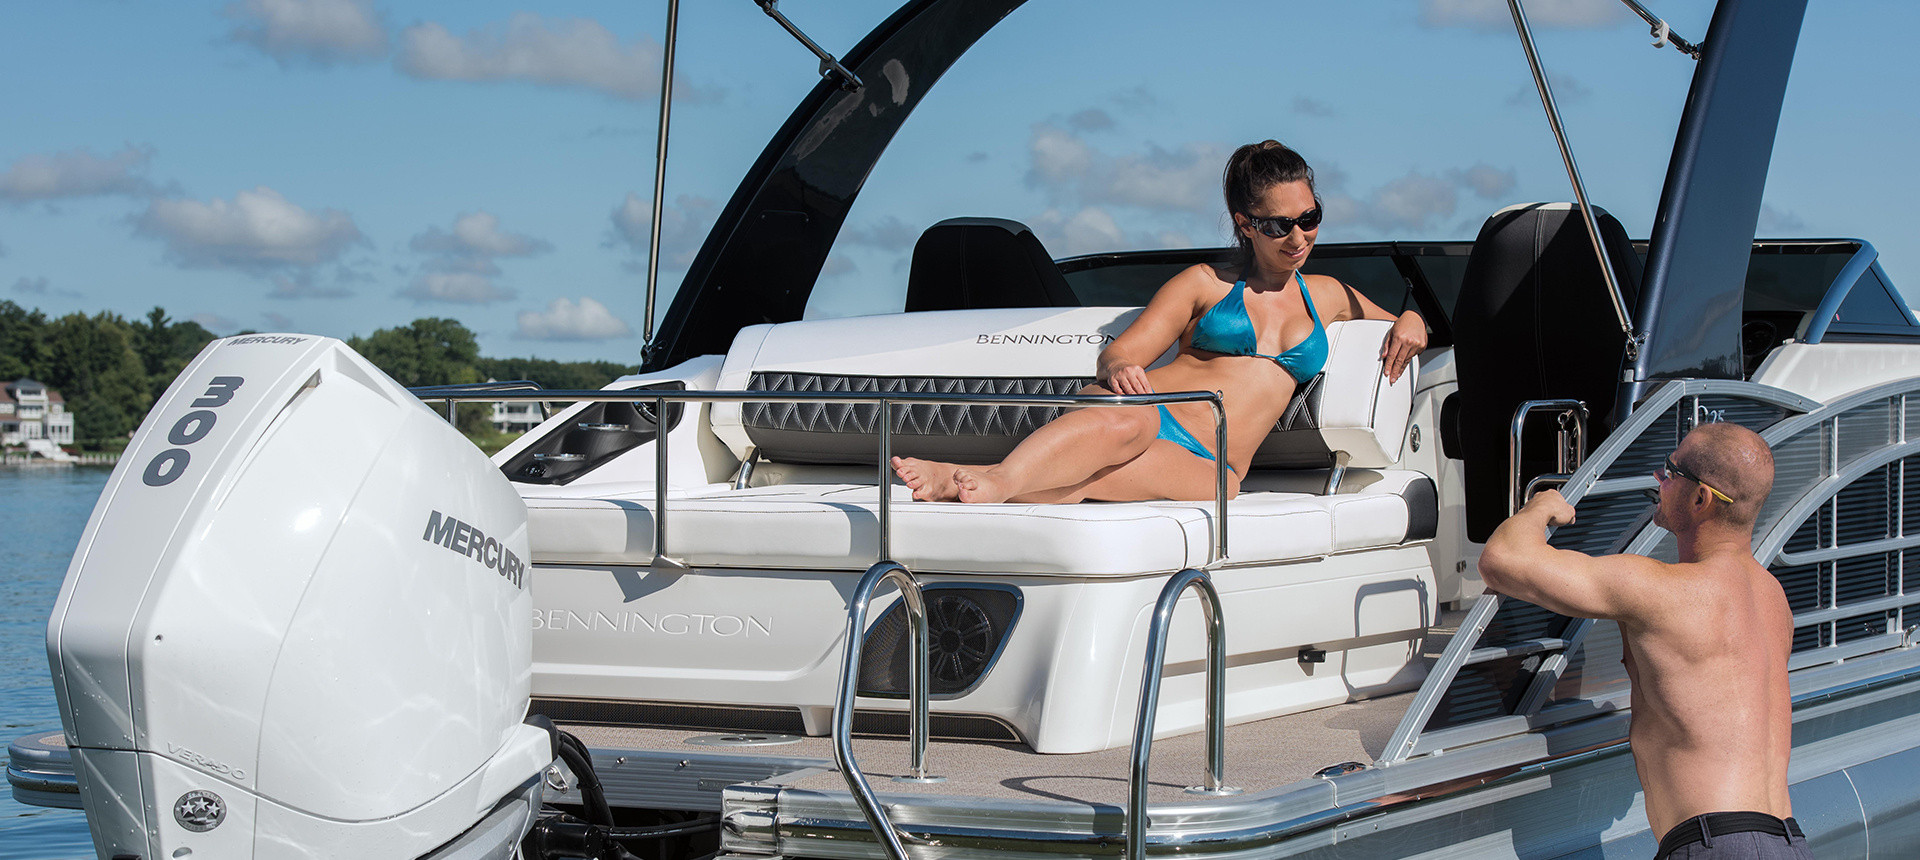 Pic of woman on Q model aft deck